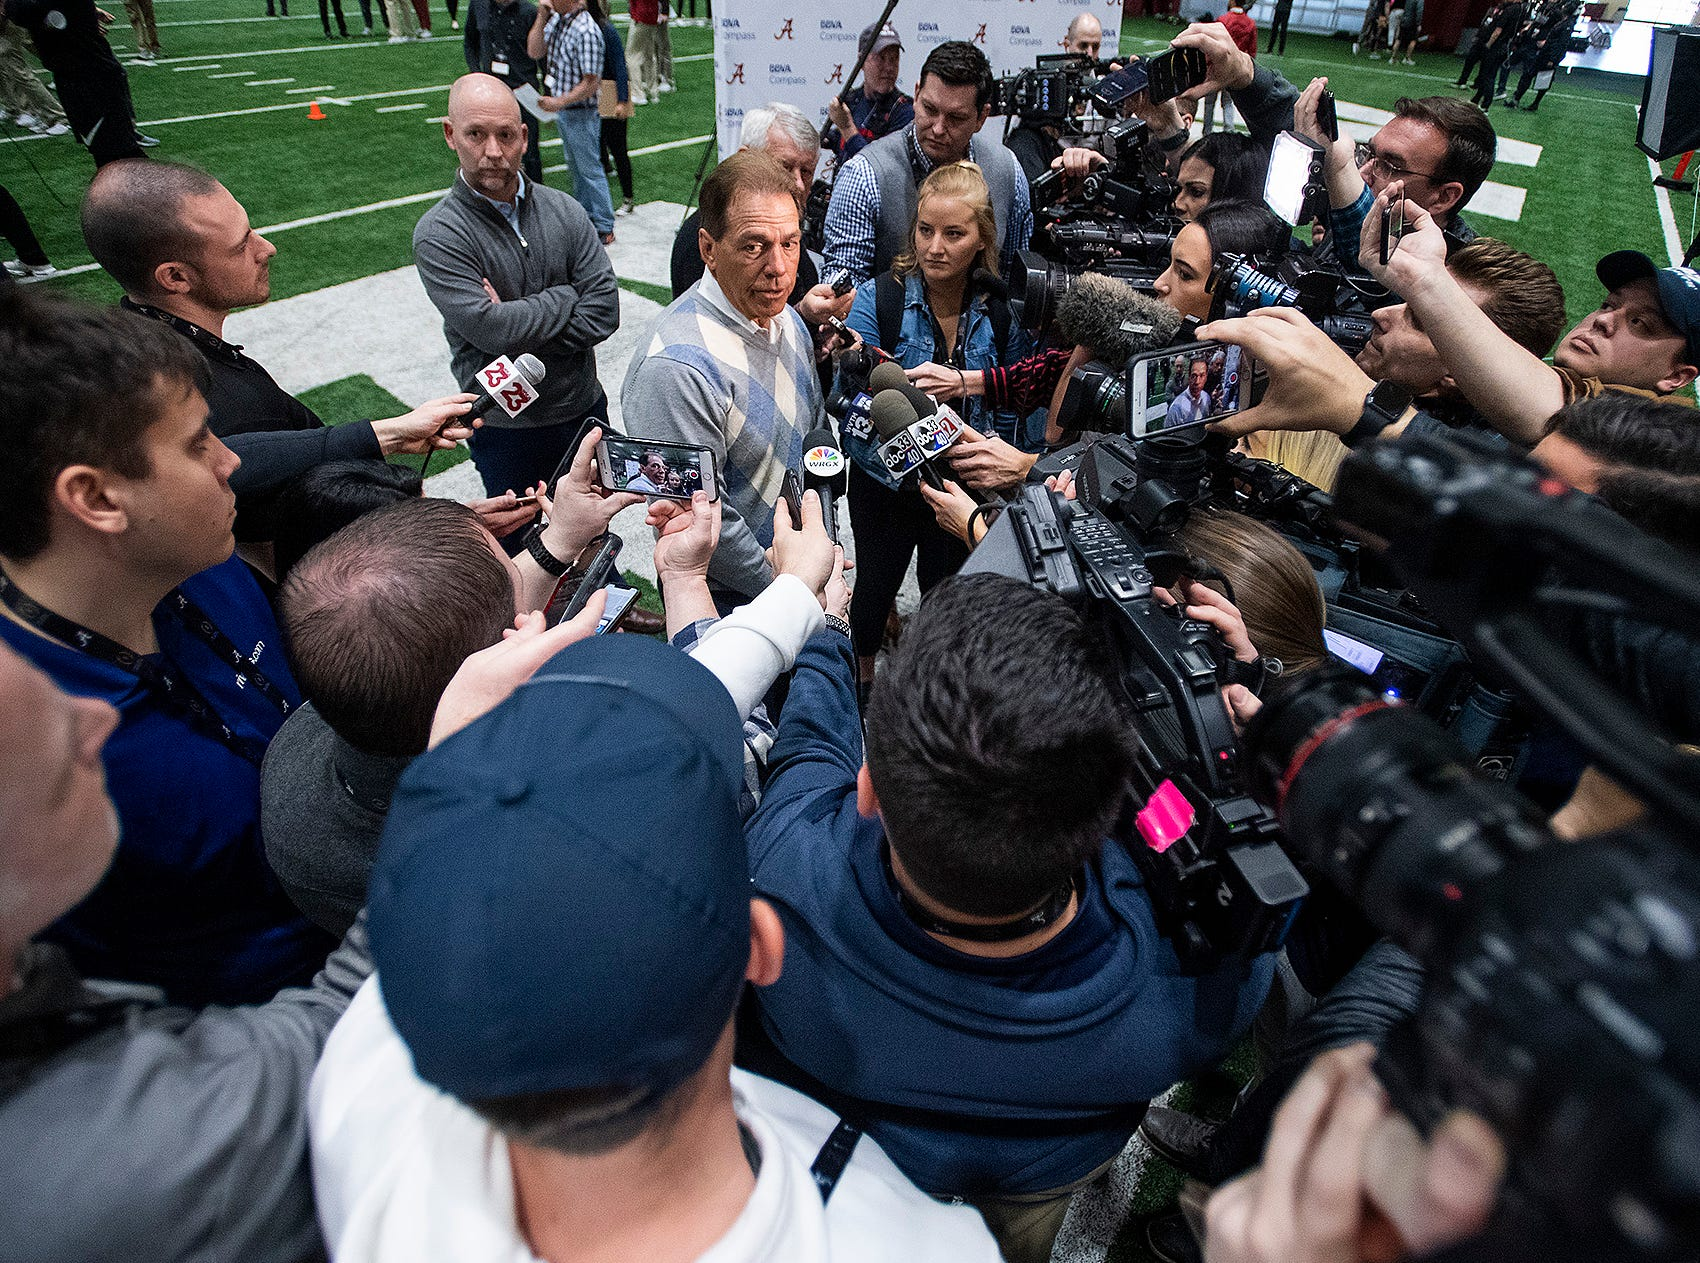 Alabama head coach Nick Saban talks with the media during Pro Day on the University of Alabama campus in Tuscaloosa, Ala., on Tuesday March 19, 2019.